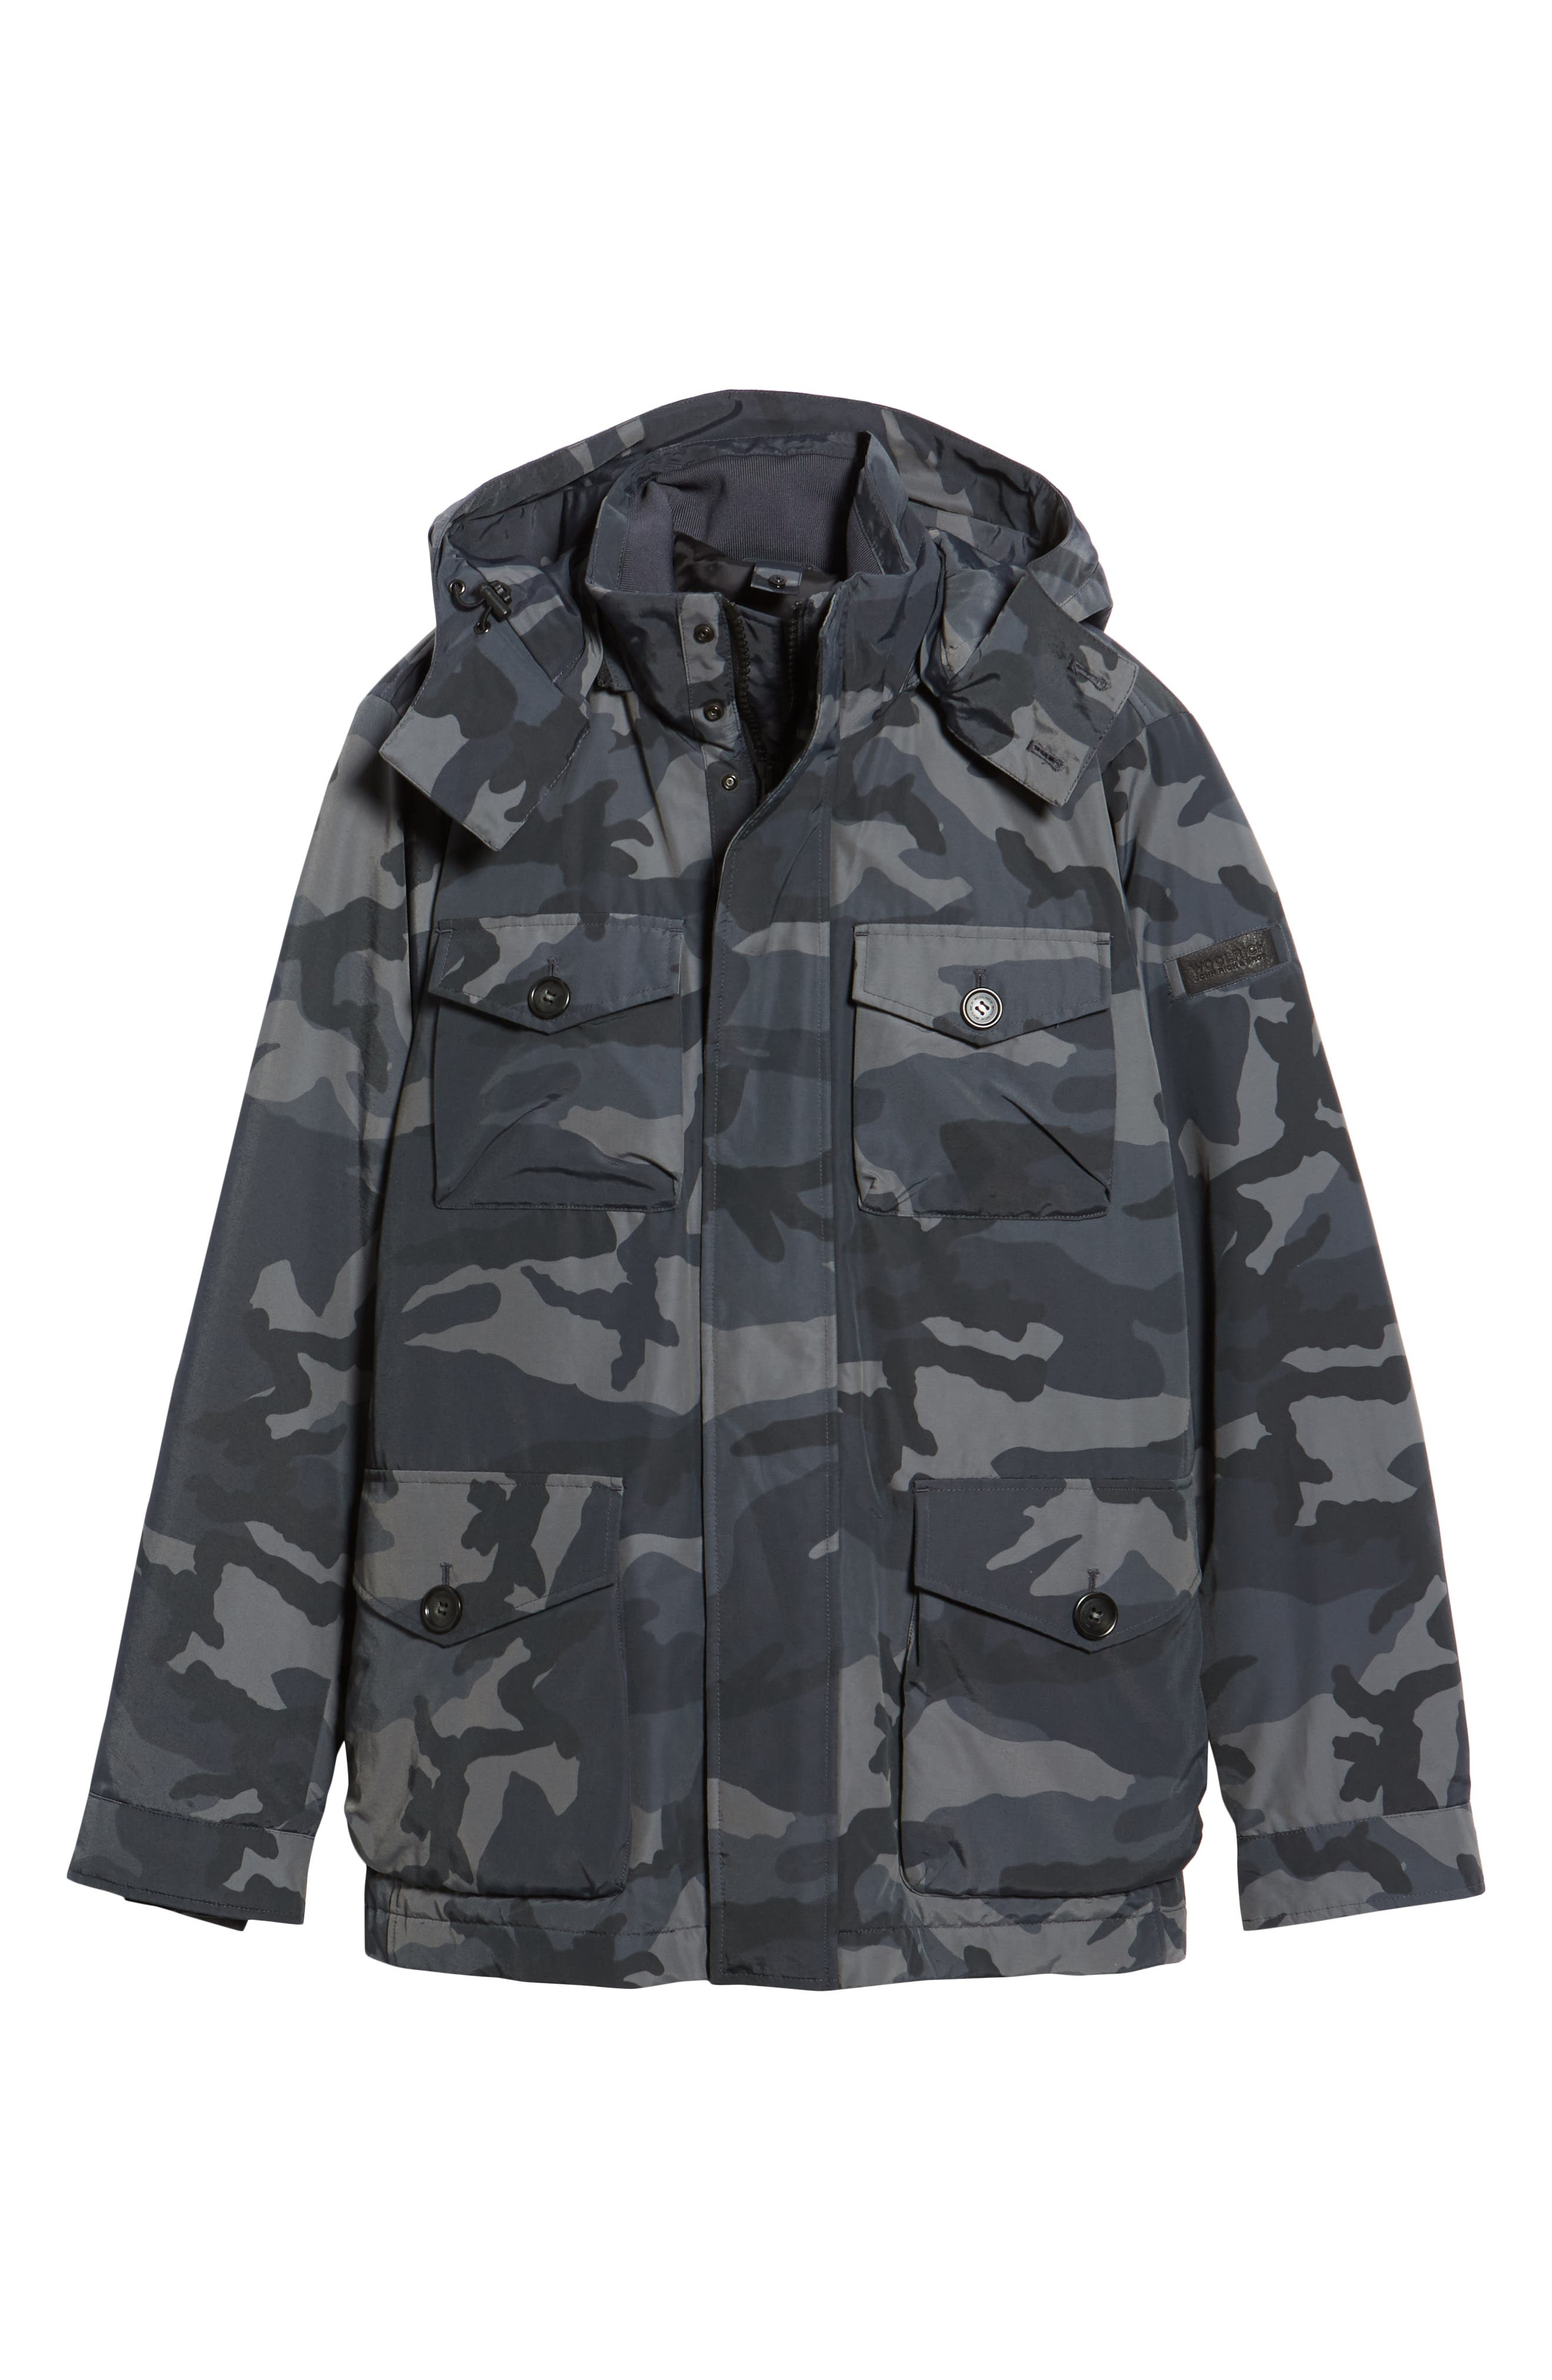 Camou Field Jacket,                             Alternate thumbnail 6, color,                             GREY CAMOU